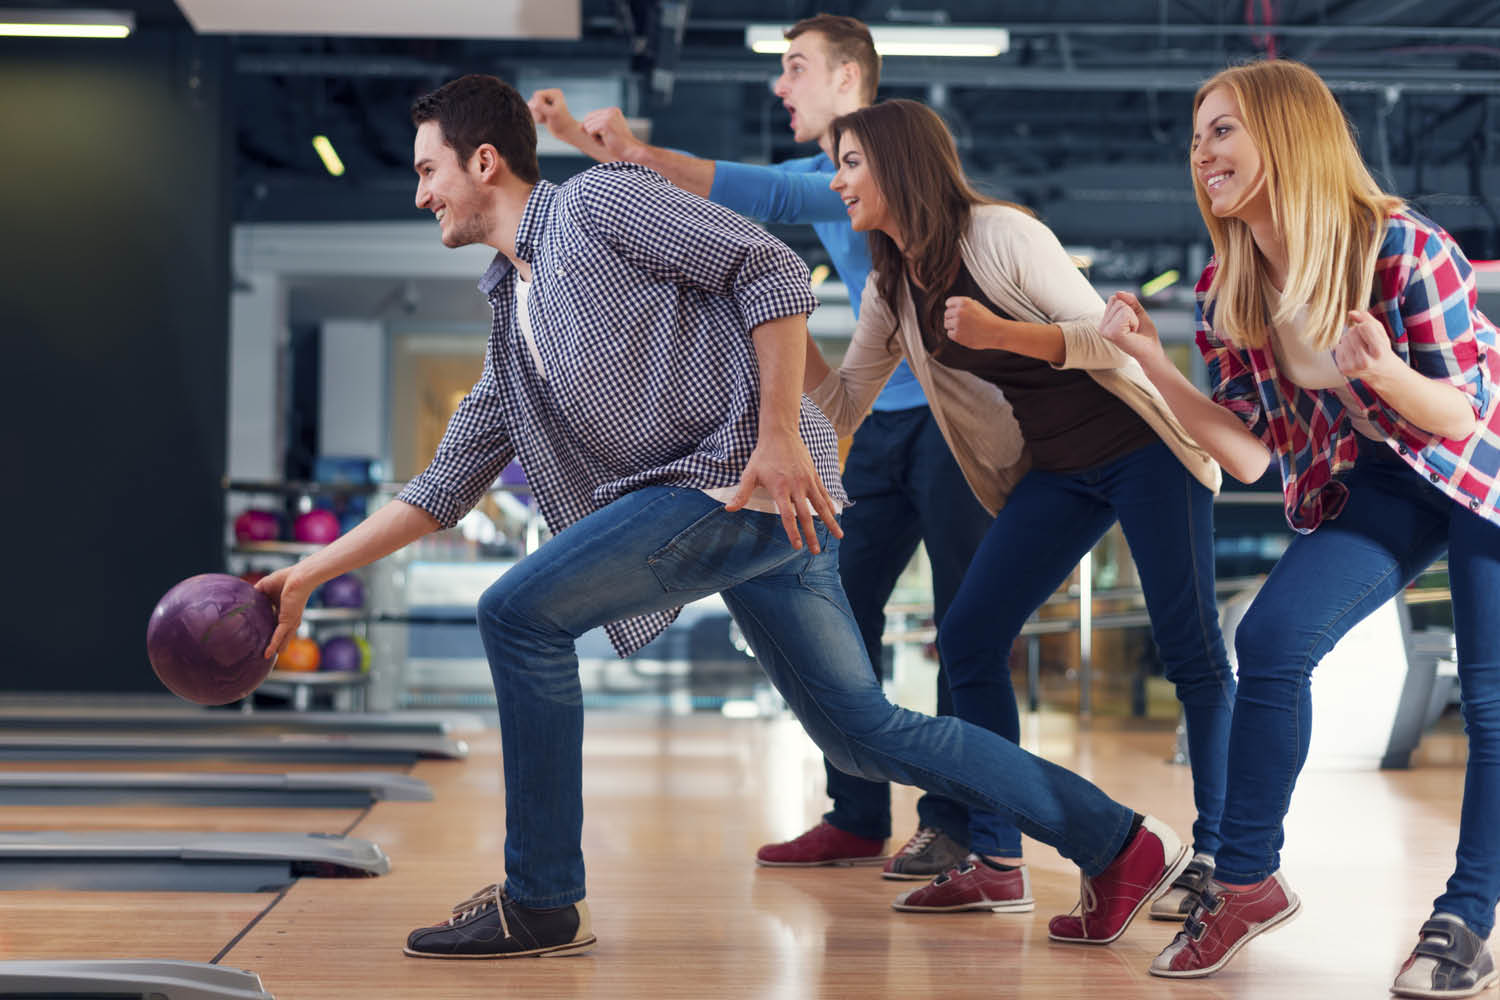 Looking for family fun? Head to the bowling alley in New Milford.